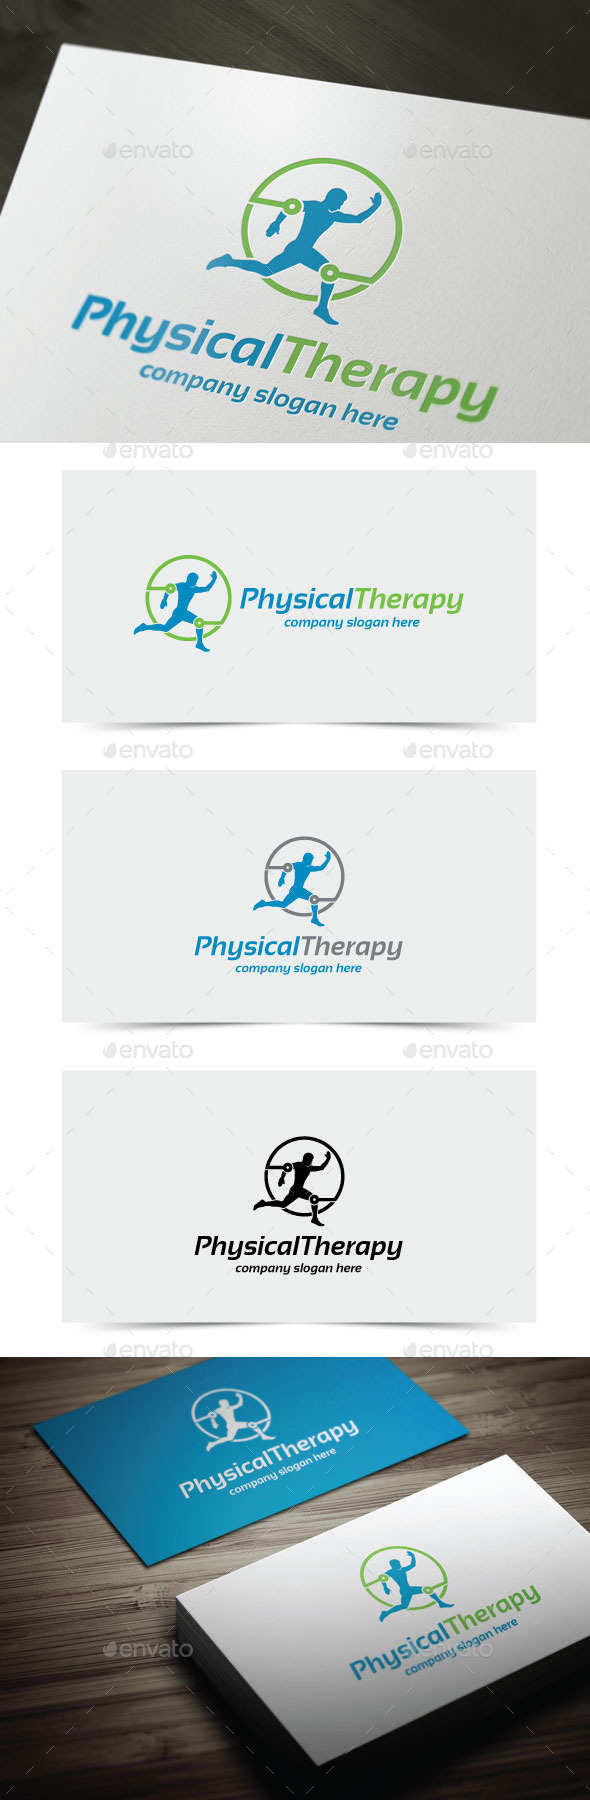 Physical Therapy - Humans Logo Templates